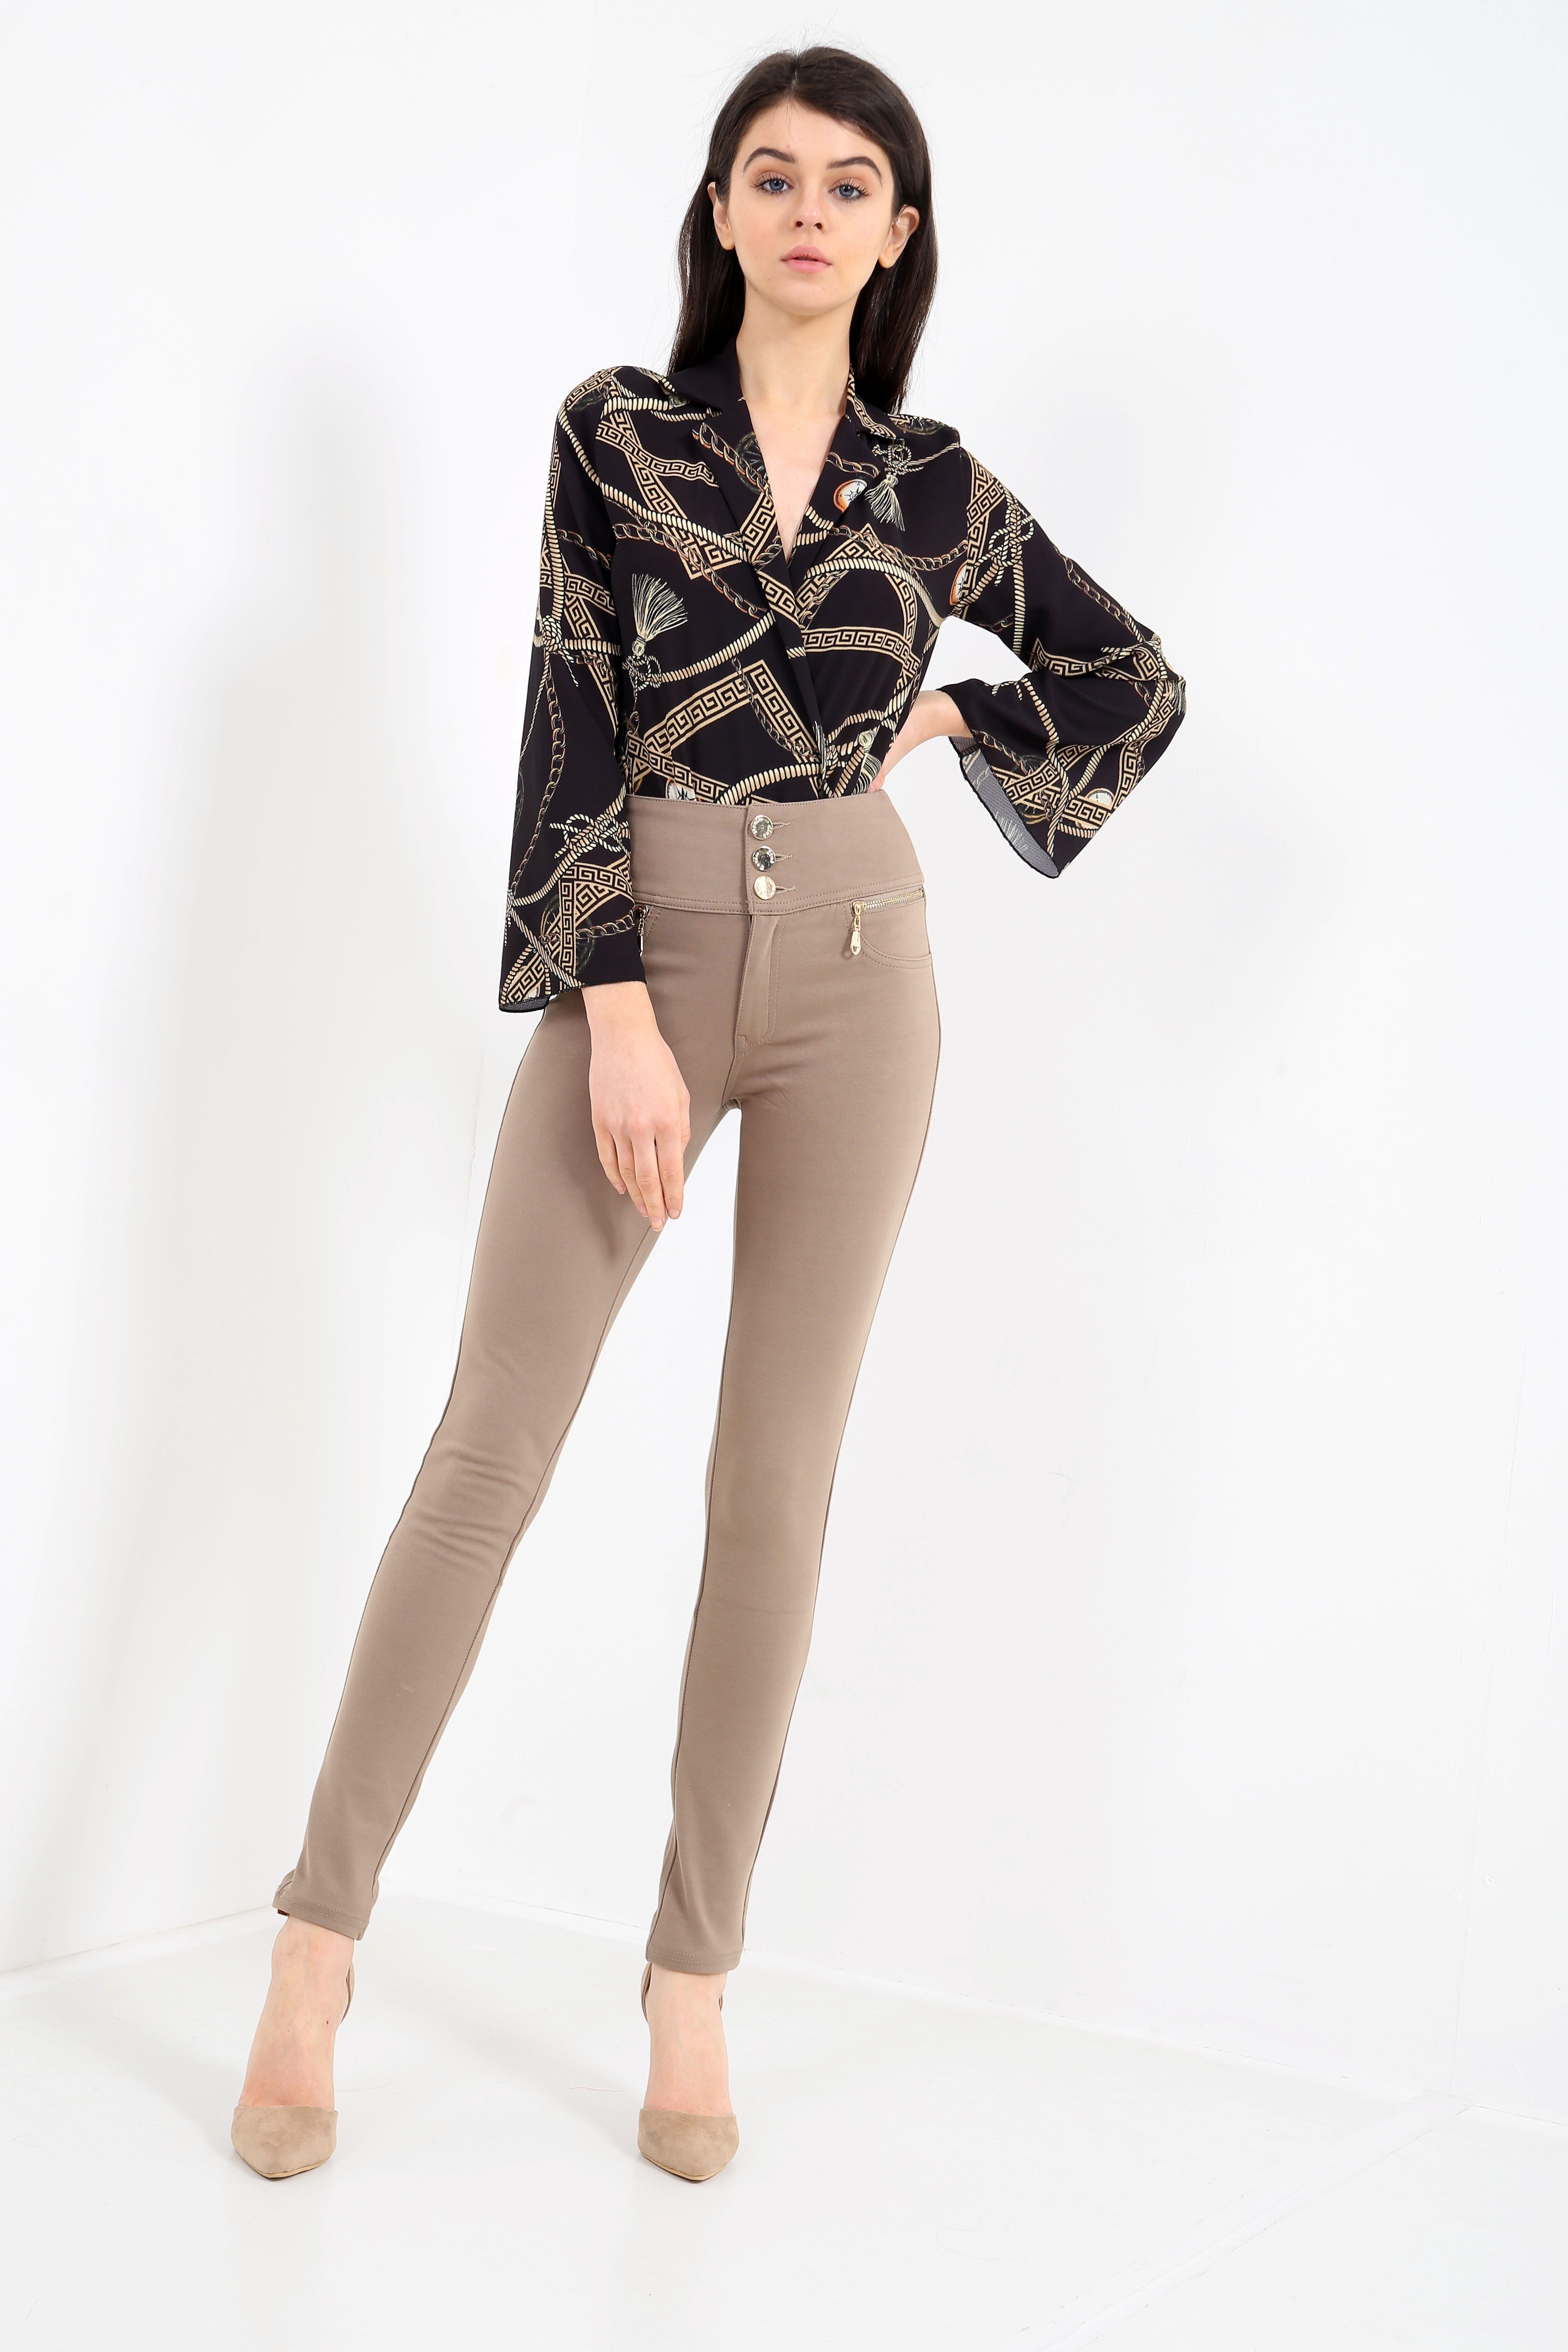 288f486c045843 ... Lizzie 3 Button High Waisted Leggings In Mocha ‹Return to Previous  Page. Bug Fix. Previous; Next